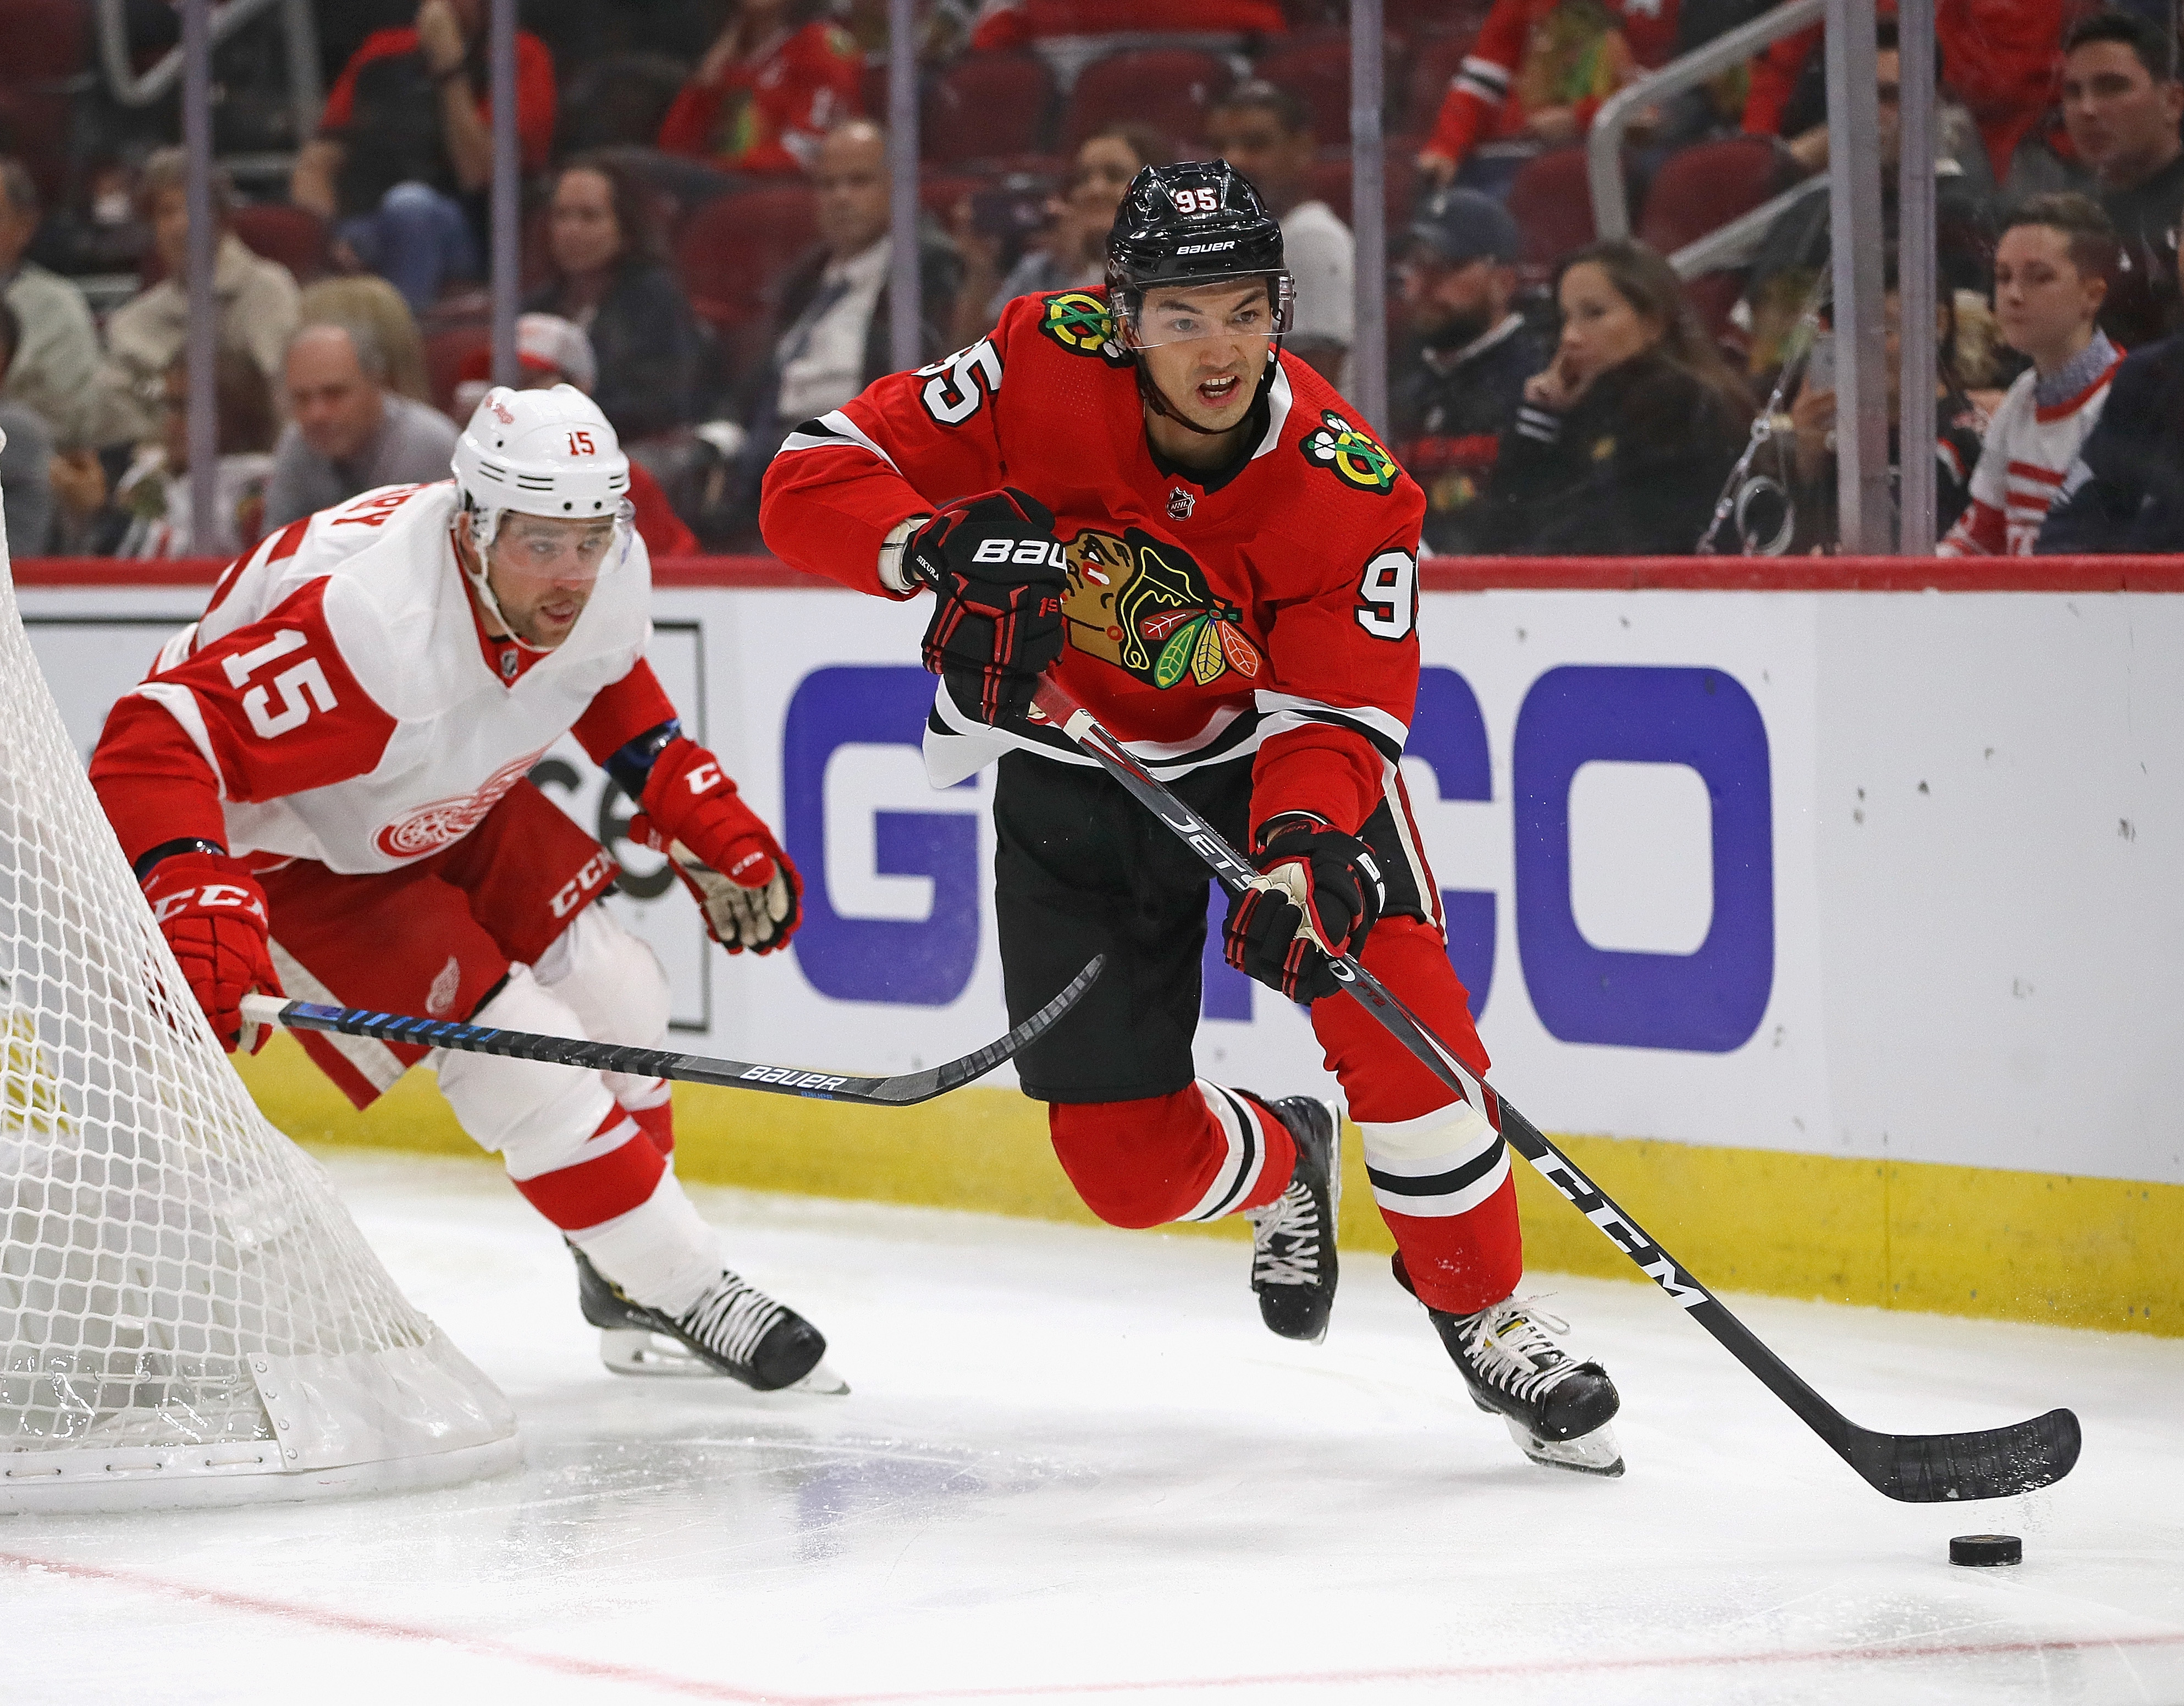 Dylan Sikura needs a more productive NHL stint this year to maintain his spot in the Blackhawks' prospect pecking order.